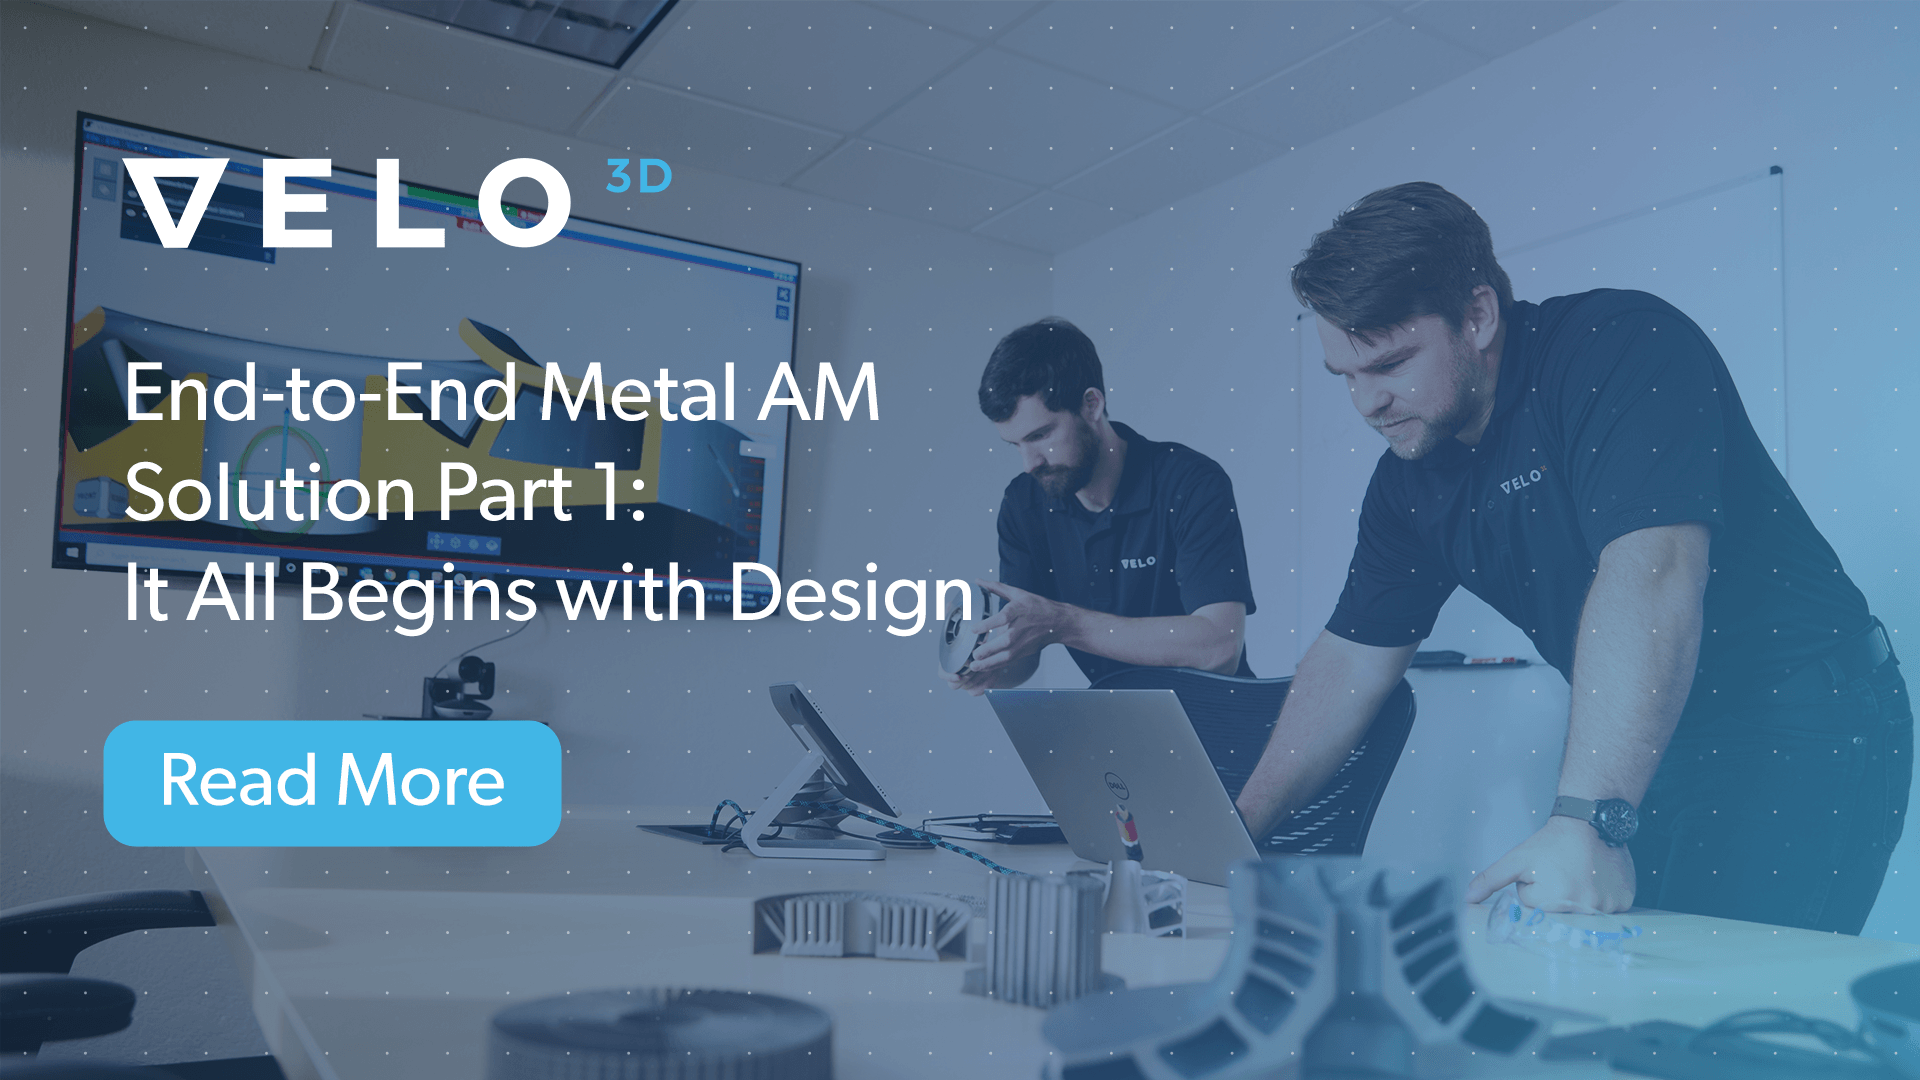 The Velo3D End-to-End Metal AM Solution Part 1: It All Begins with Design